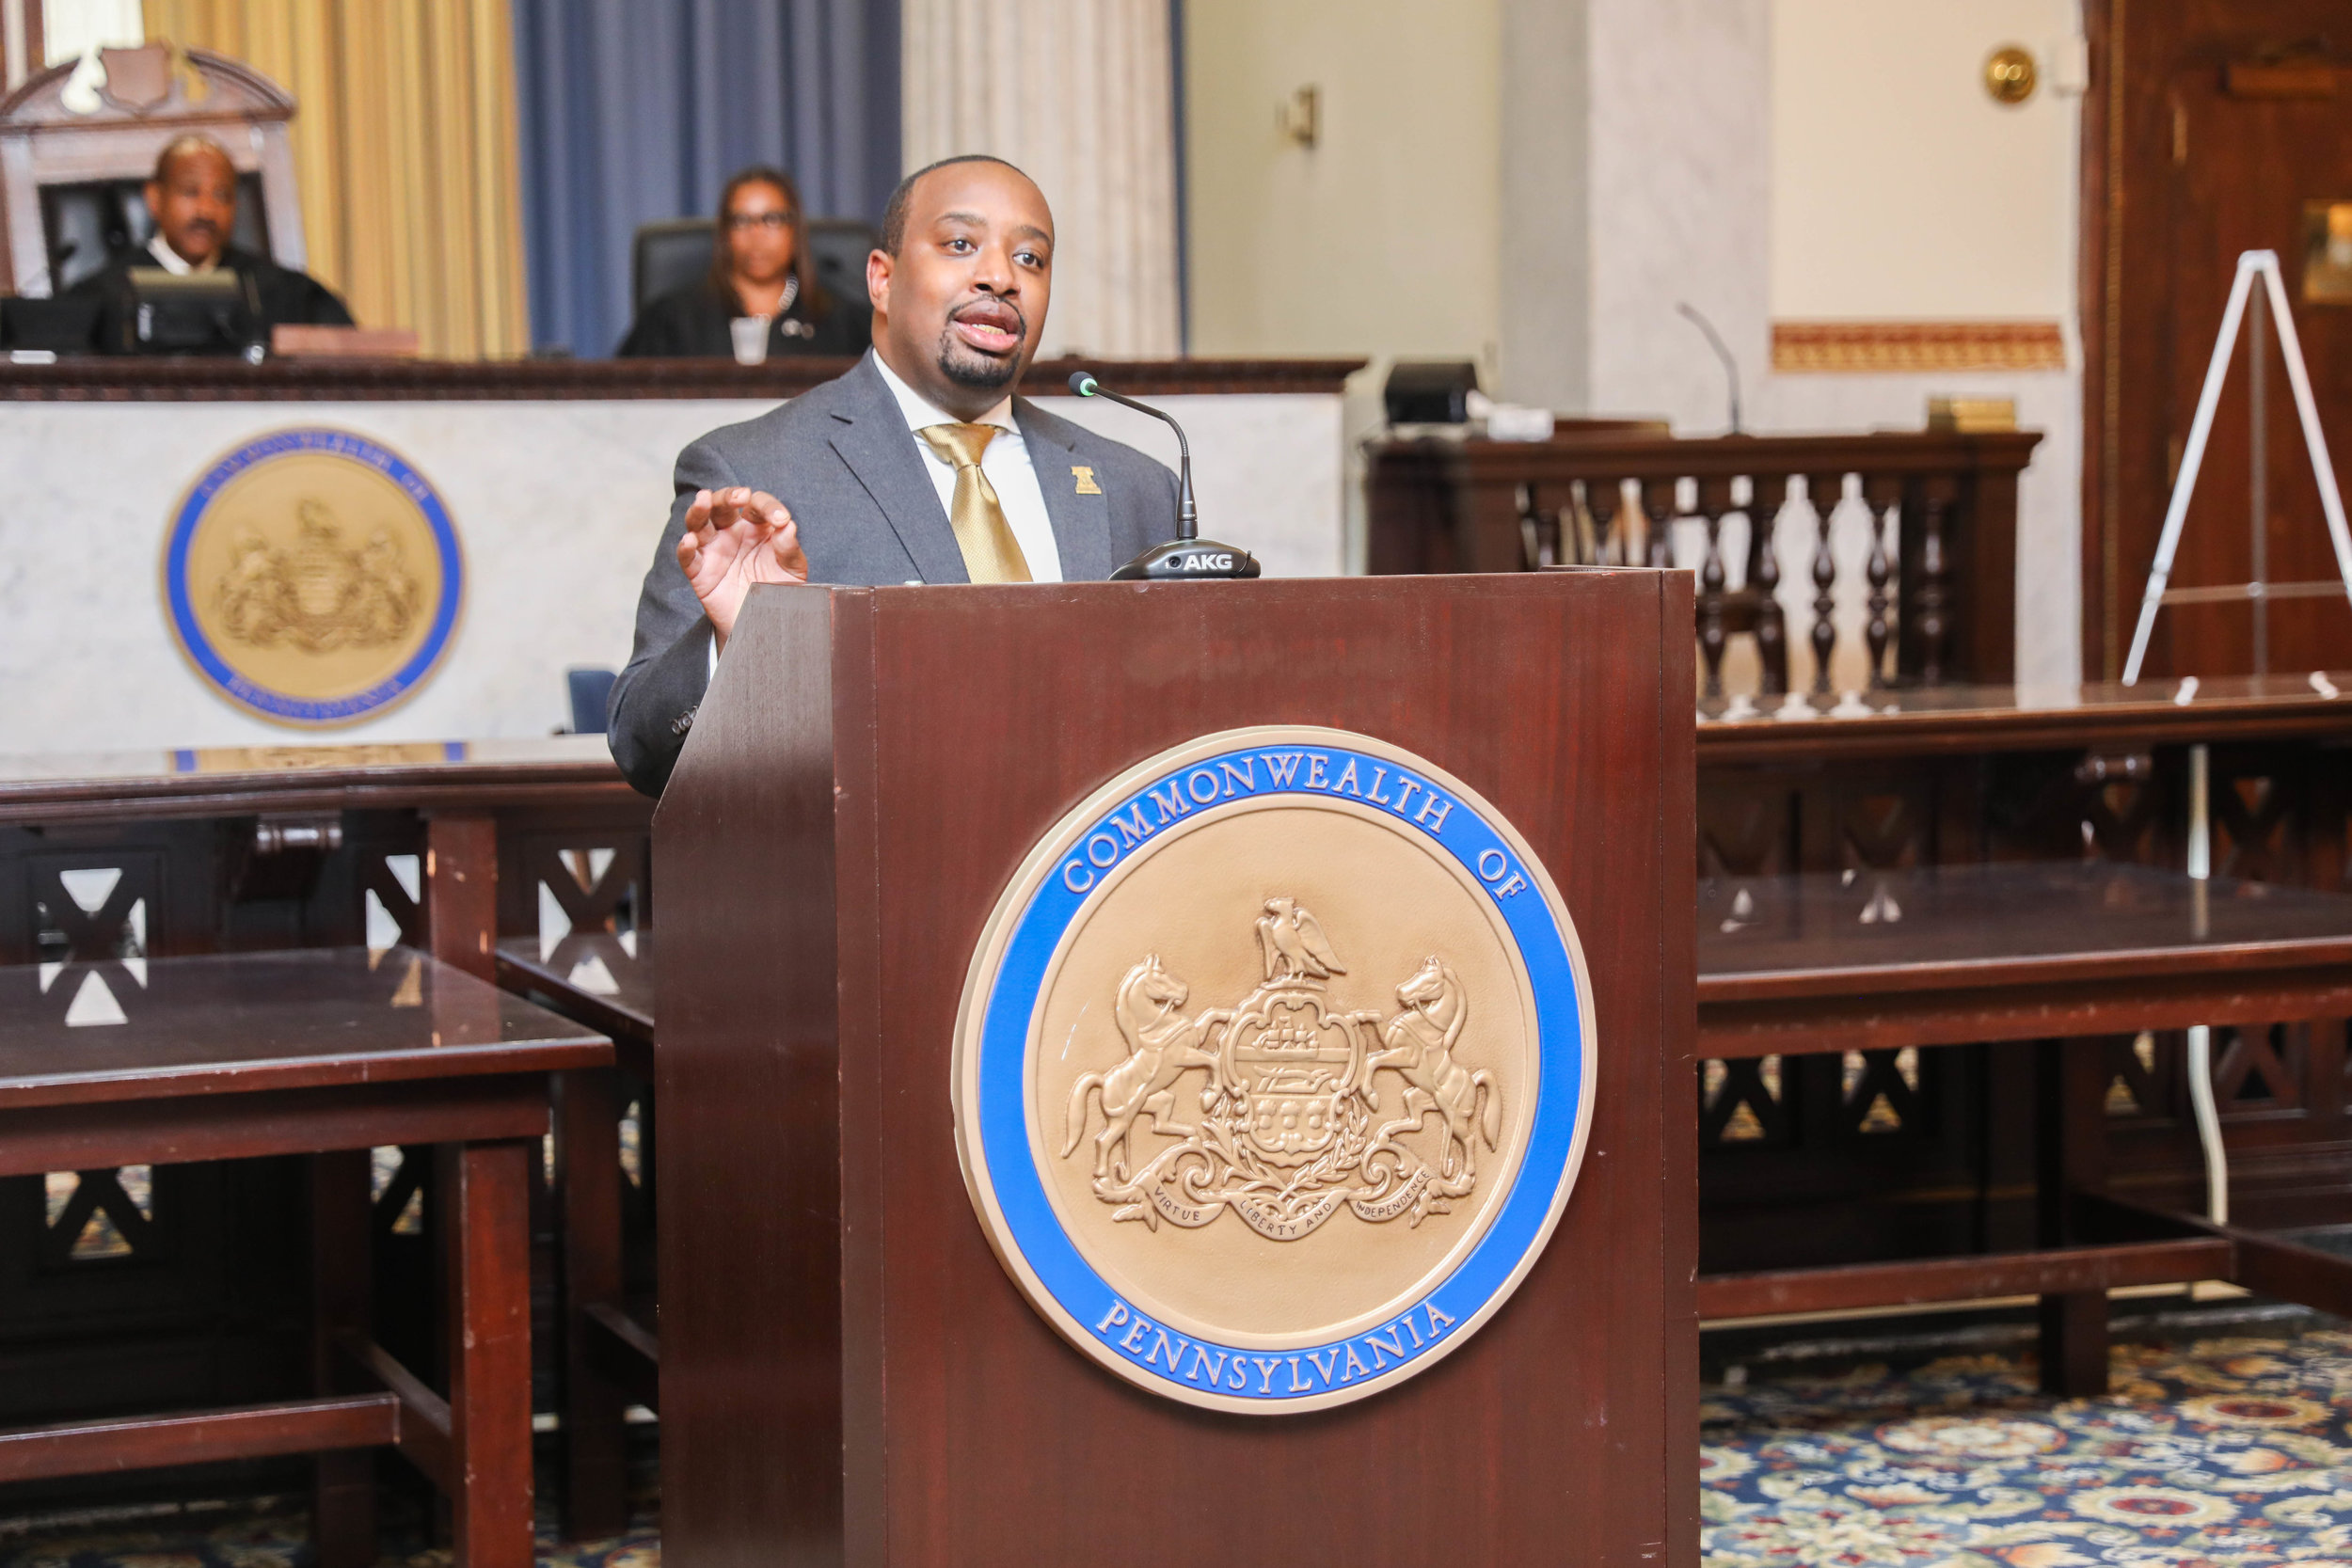 Charles Gibbs at Phila Barristers' Presidential Inauguration